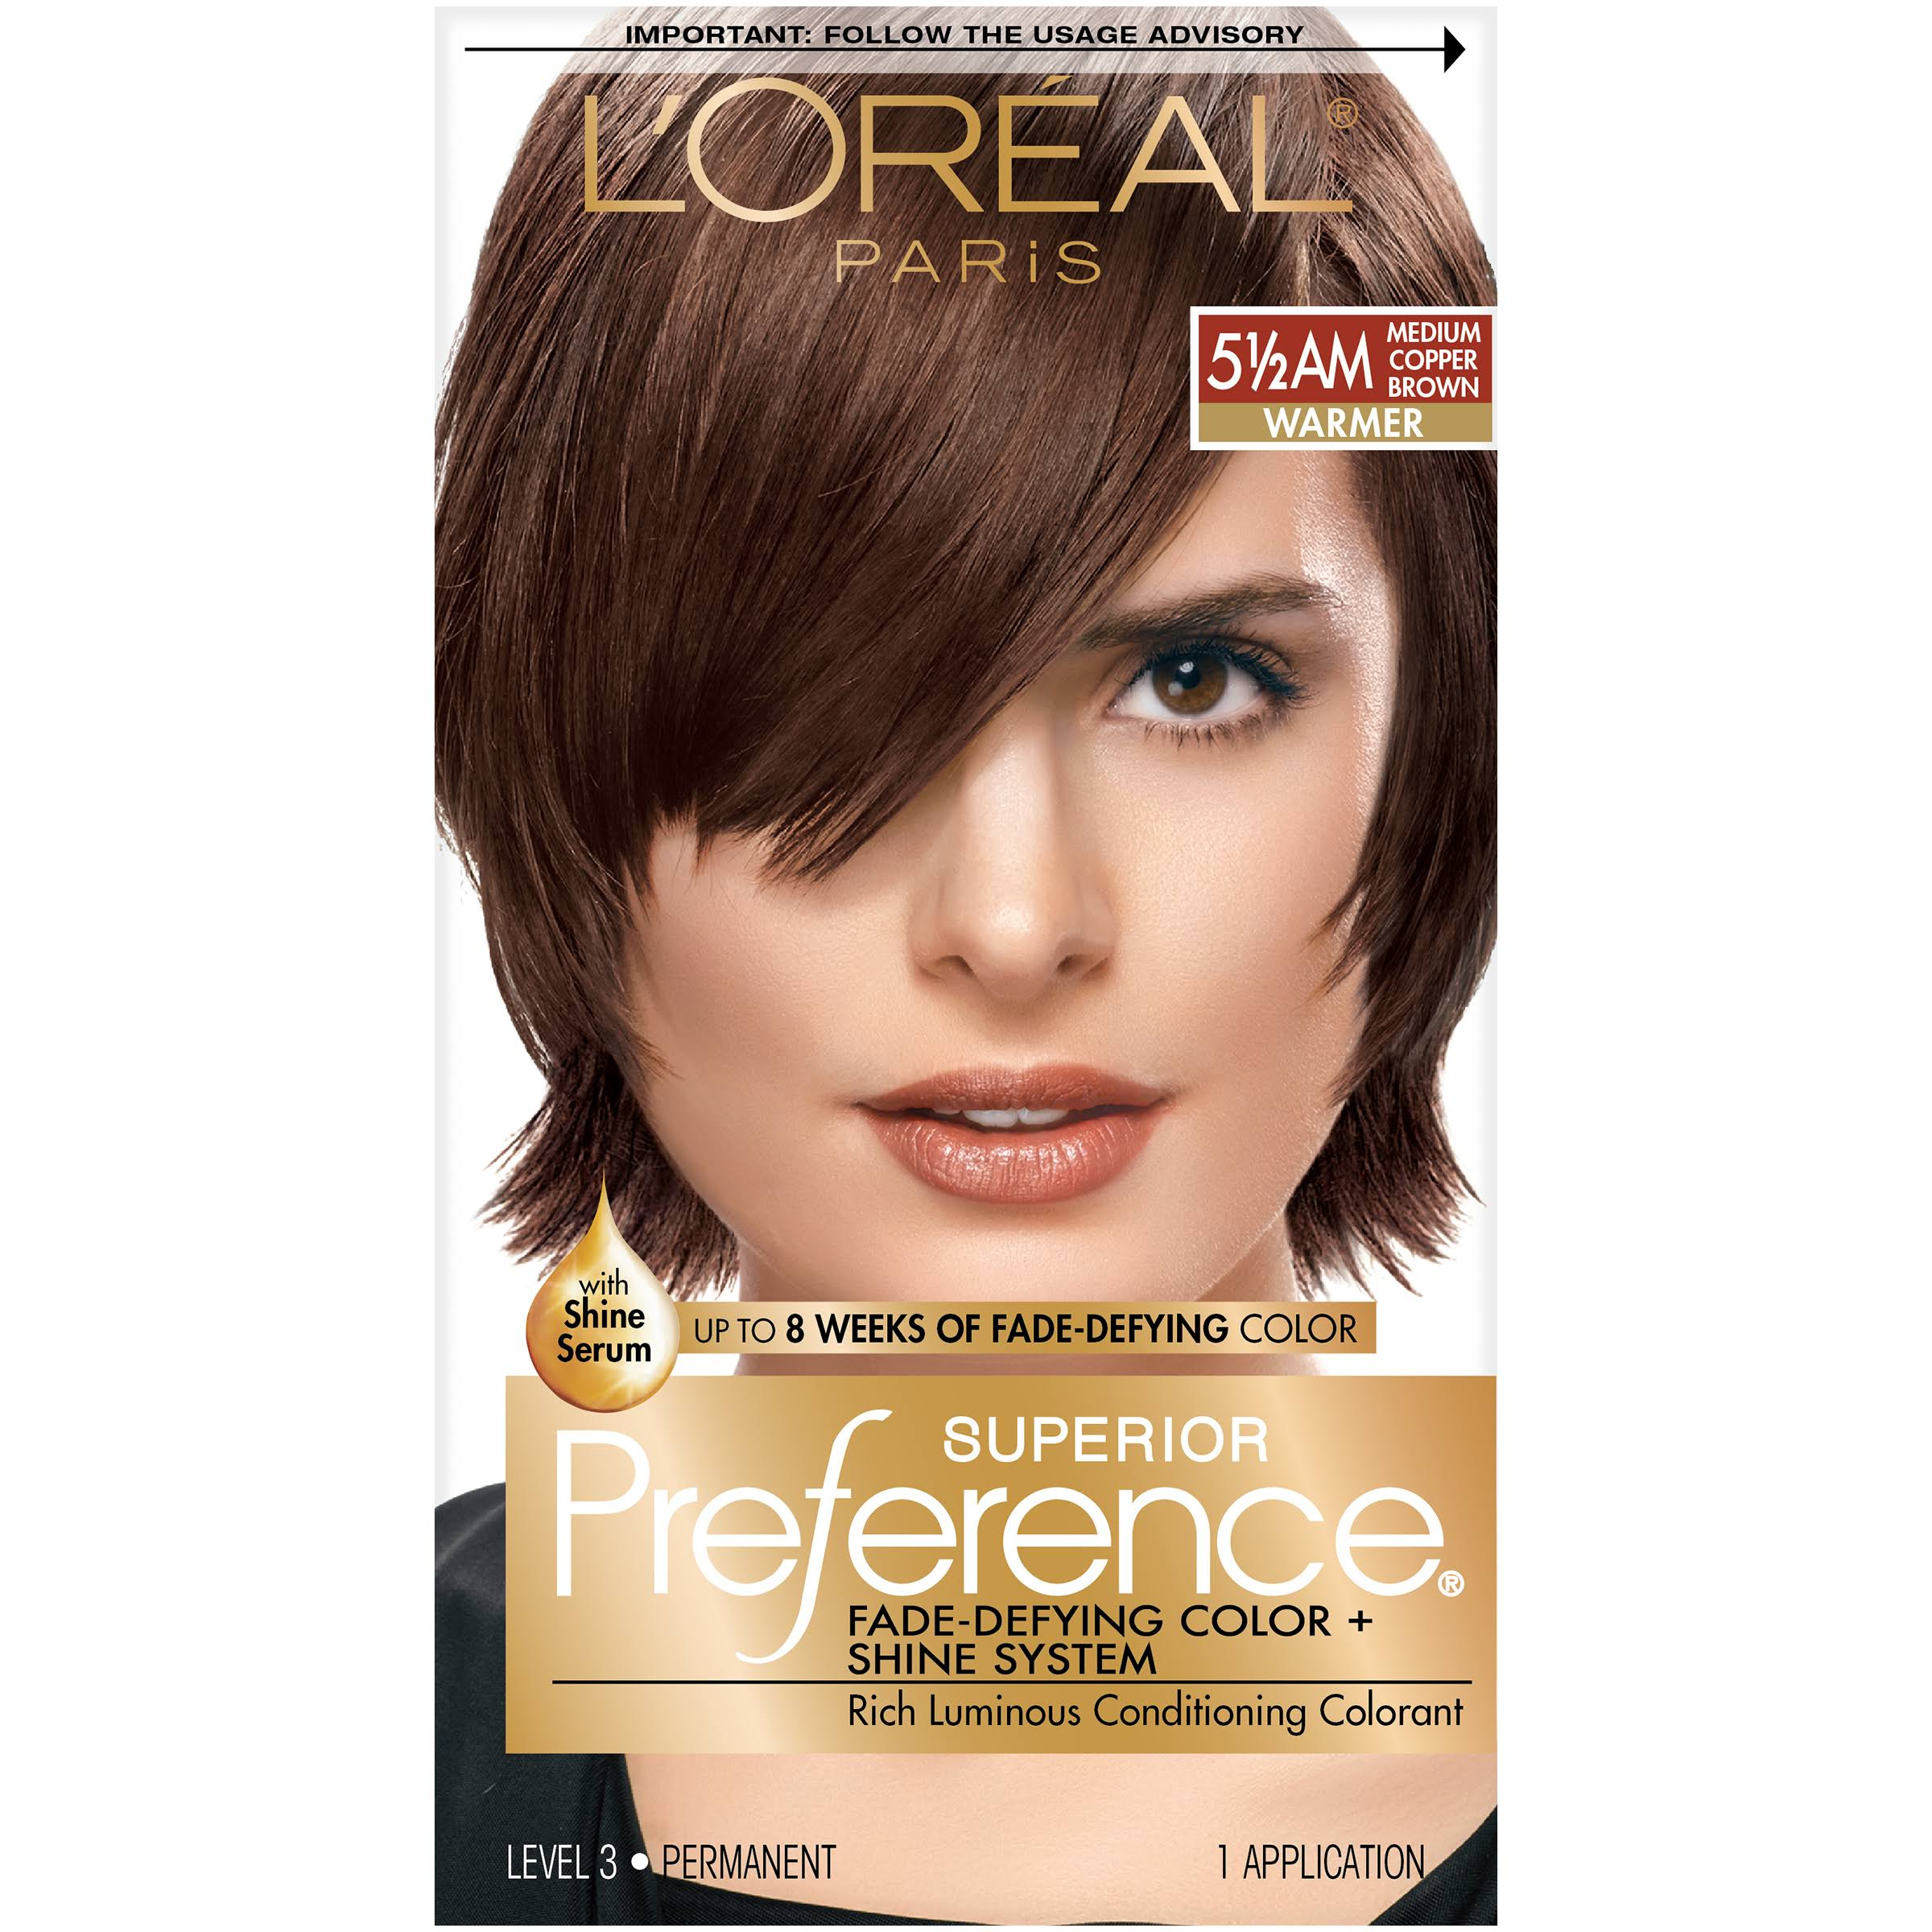 L'Oréal Paris Superior Preference Warmer - 5 1/2 AM Medium Copper Brown